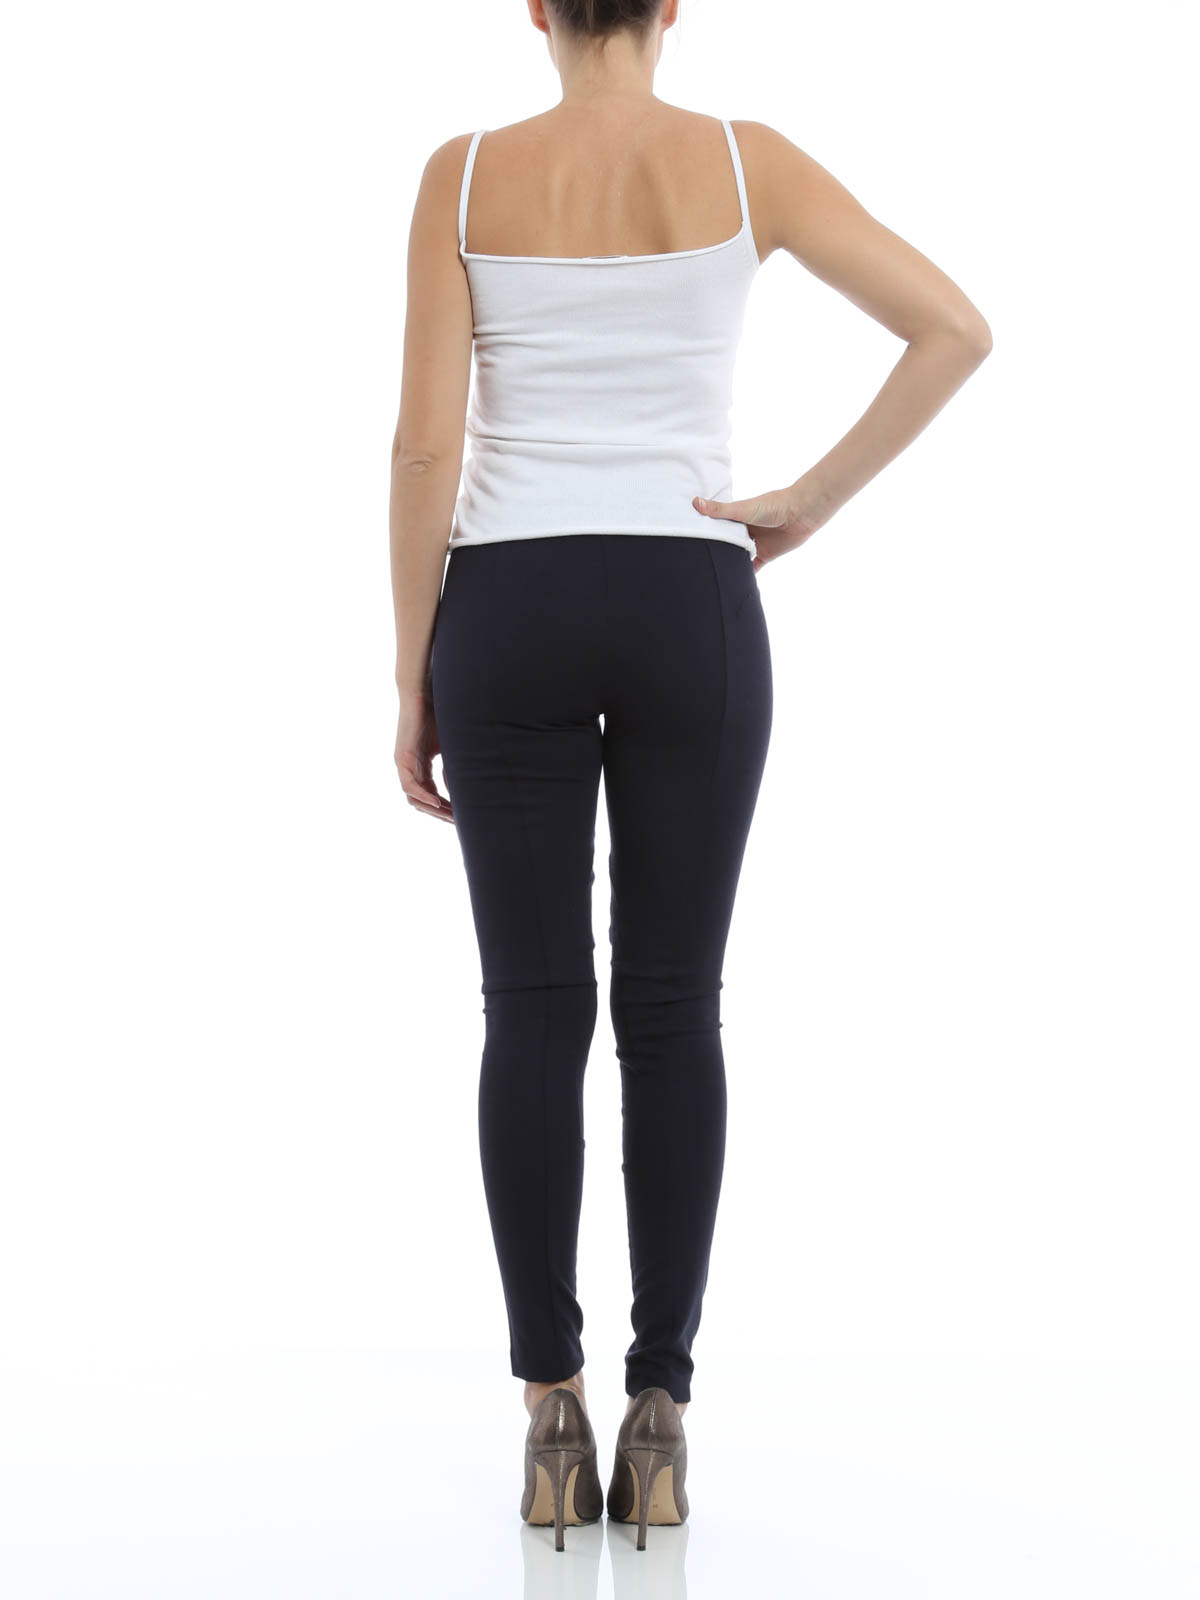 Great selection of leggings at affordable prices! Free shipping to countries. 45 days money back guarantee. Friendly customer service.